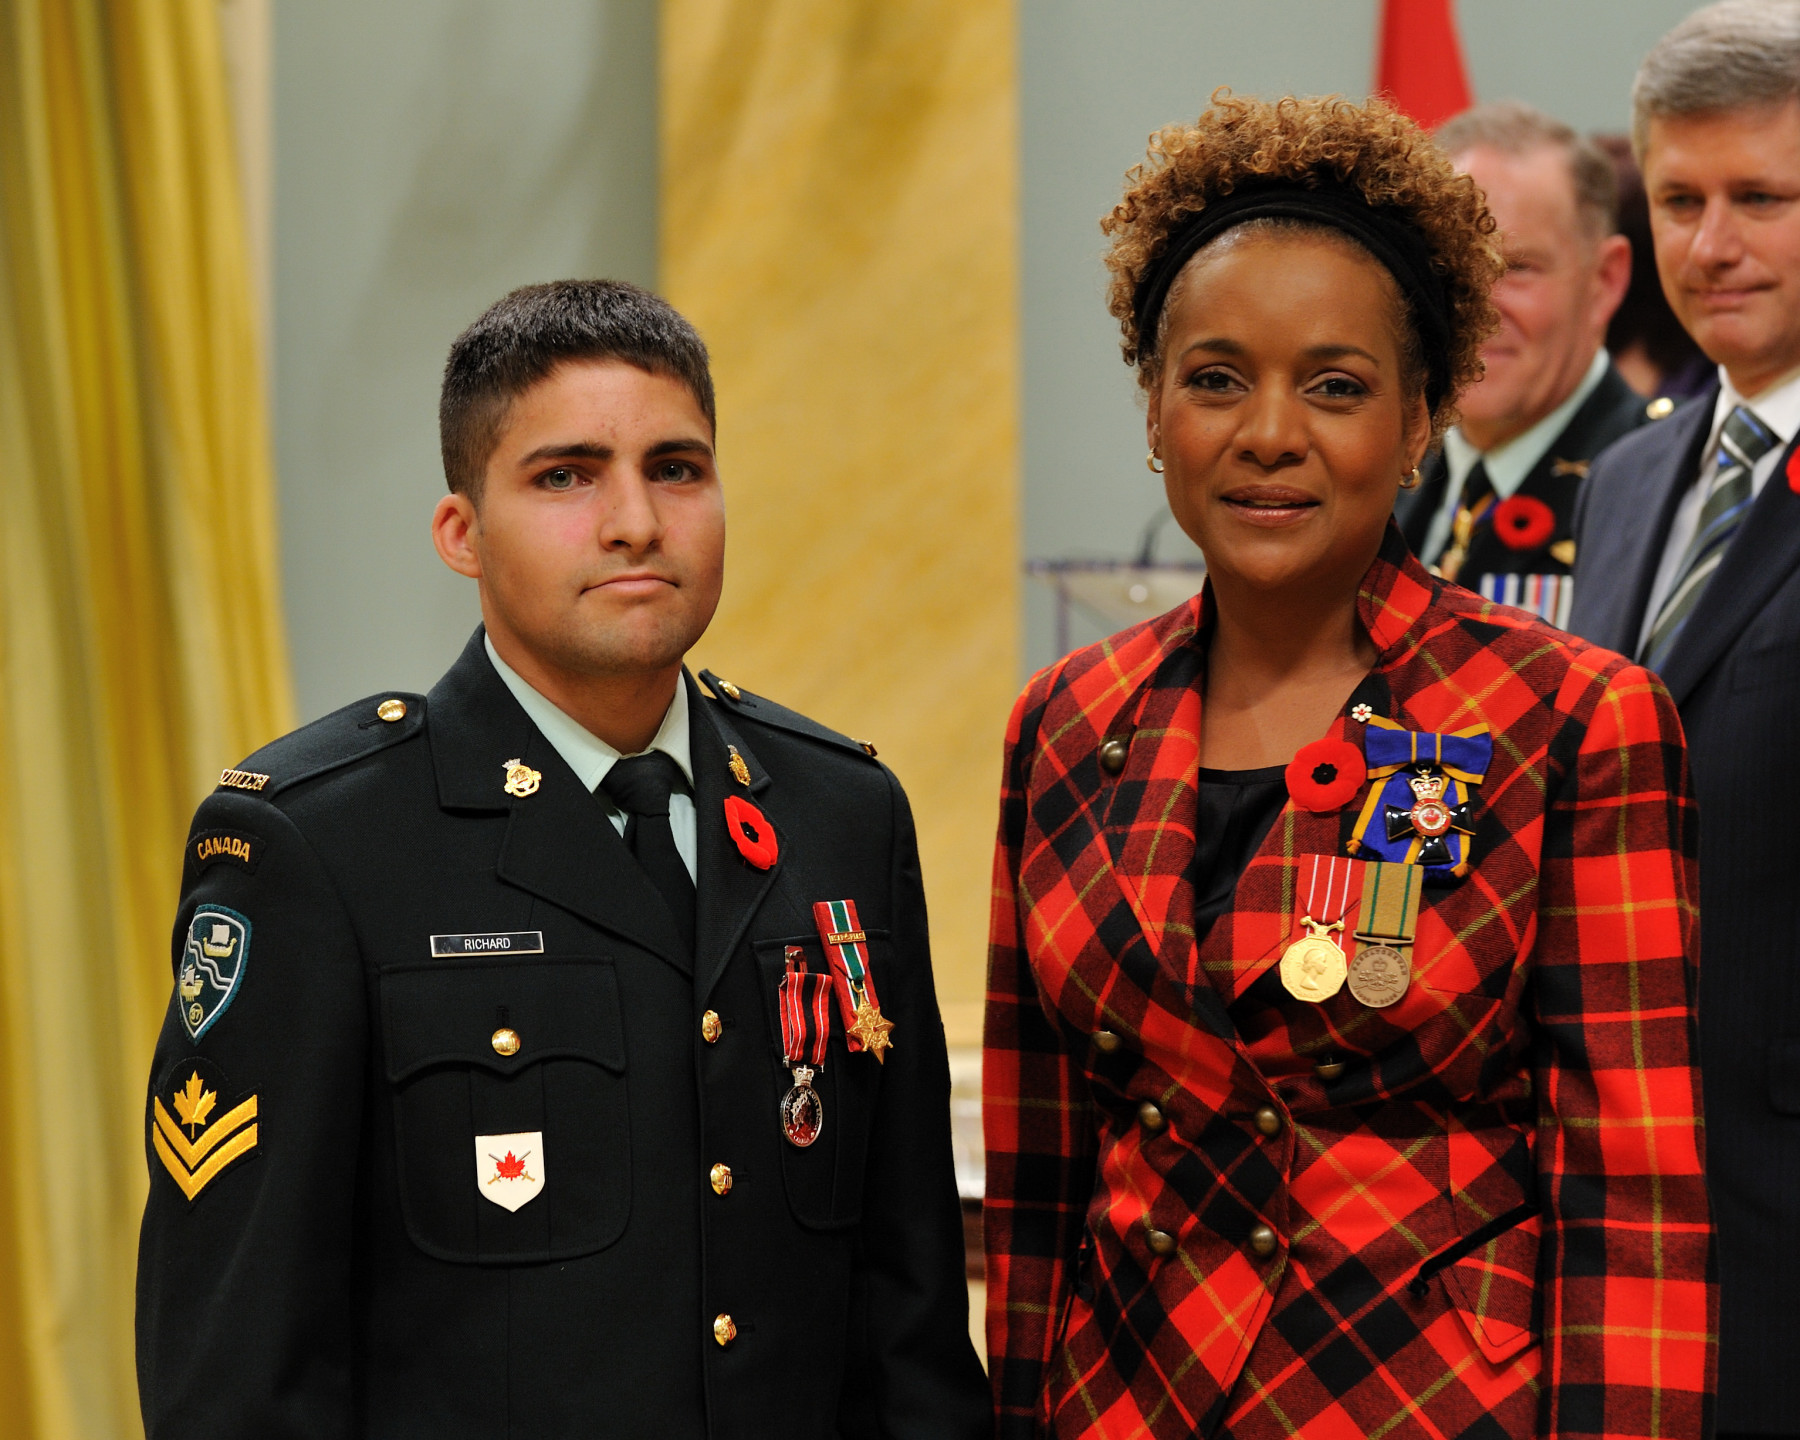 Her Excellency the Right Honourable Michaëlle Jean, Commander-in-Chief of Canada, presented the Sacrifice Medal to Master Corporal Joël Émile Richard.